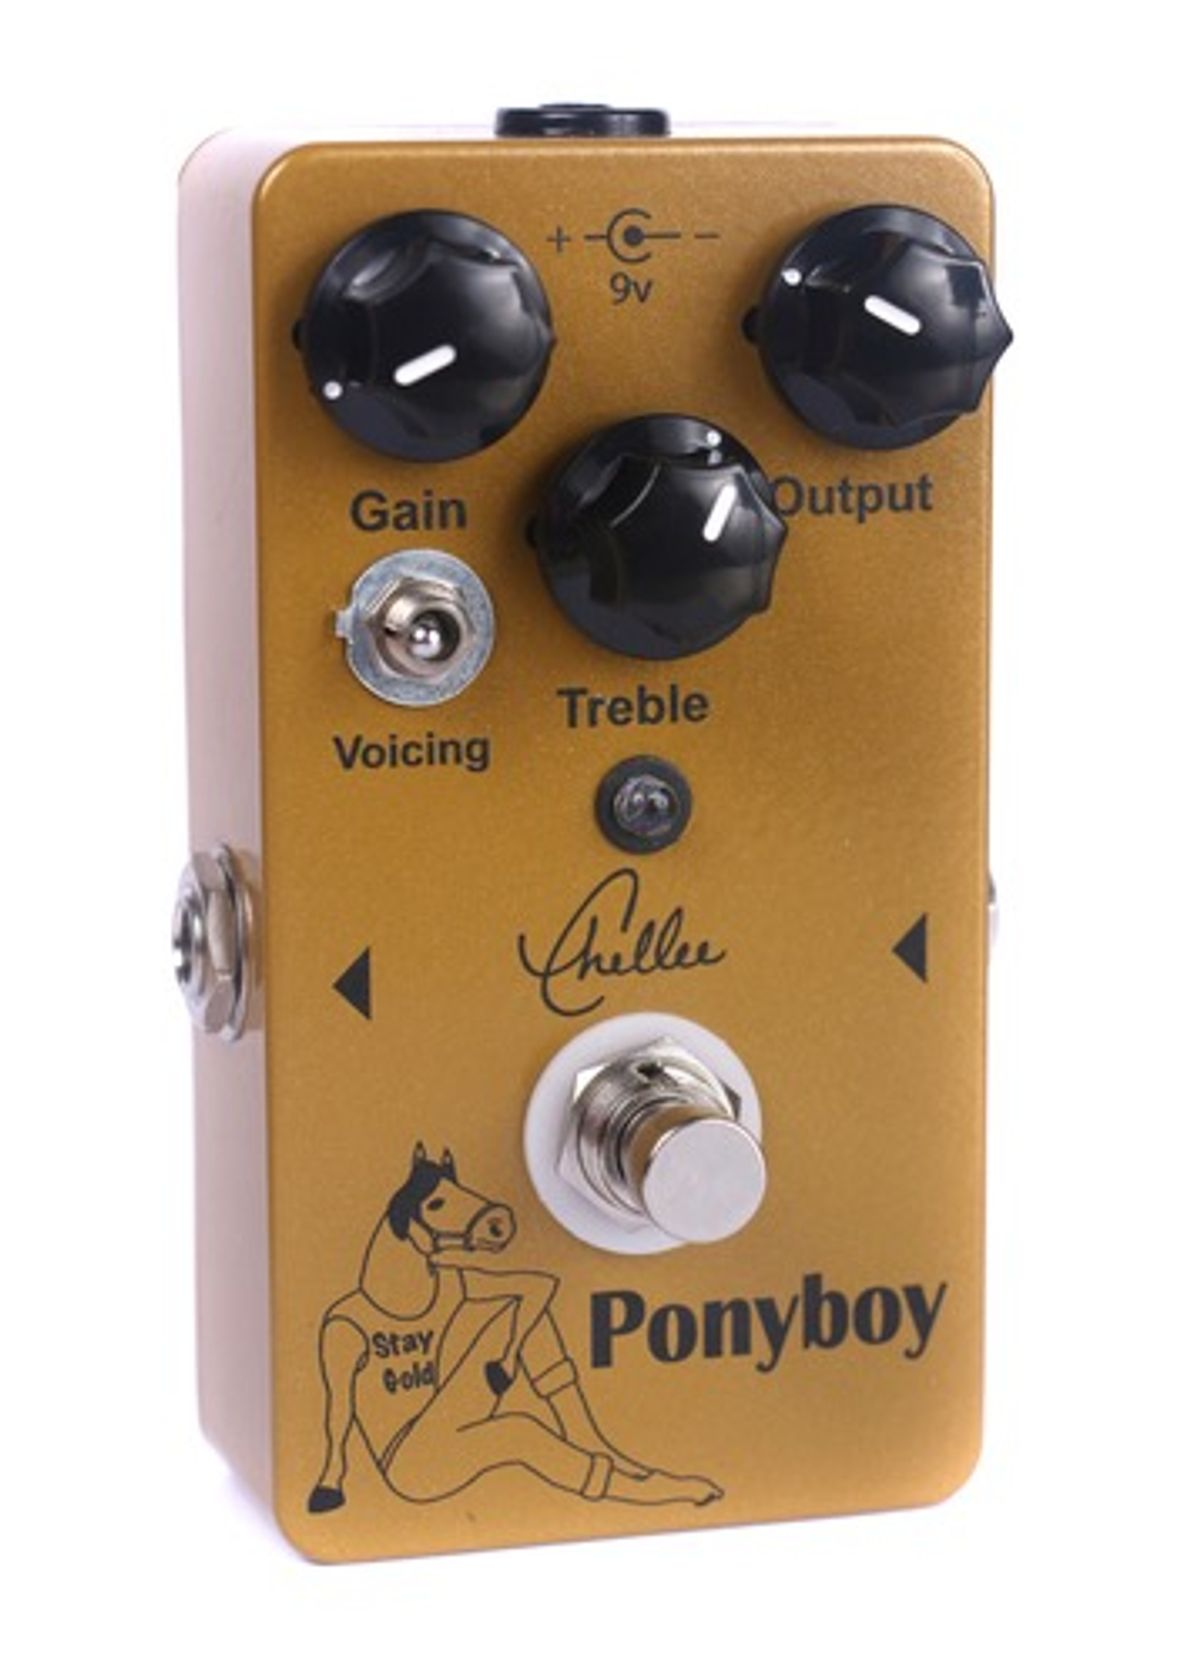 Chellee Guitars Announces the Ponyboy Overdrive